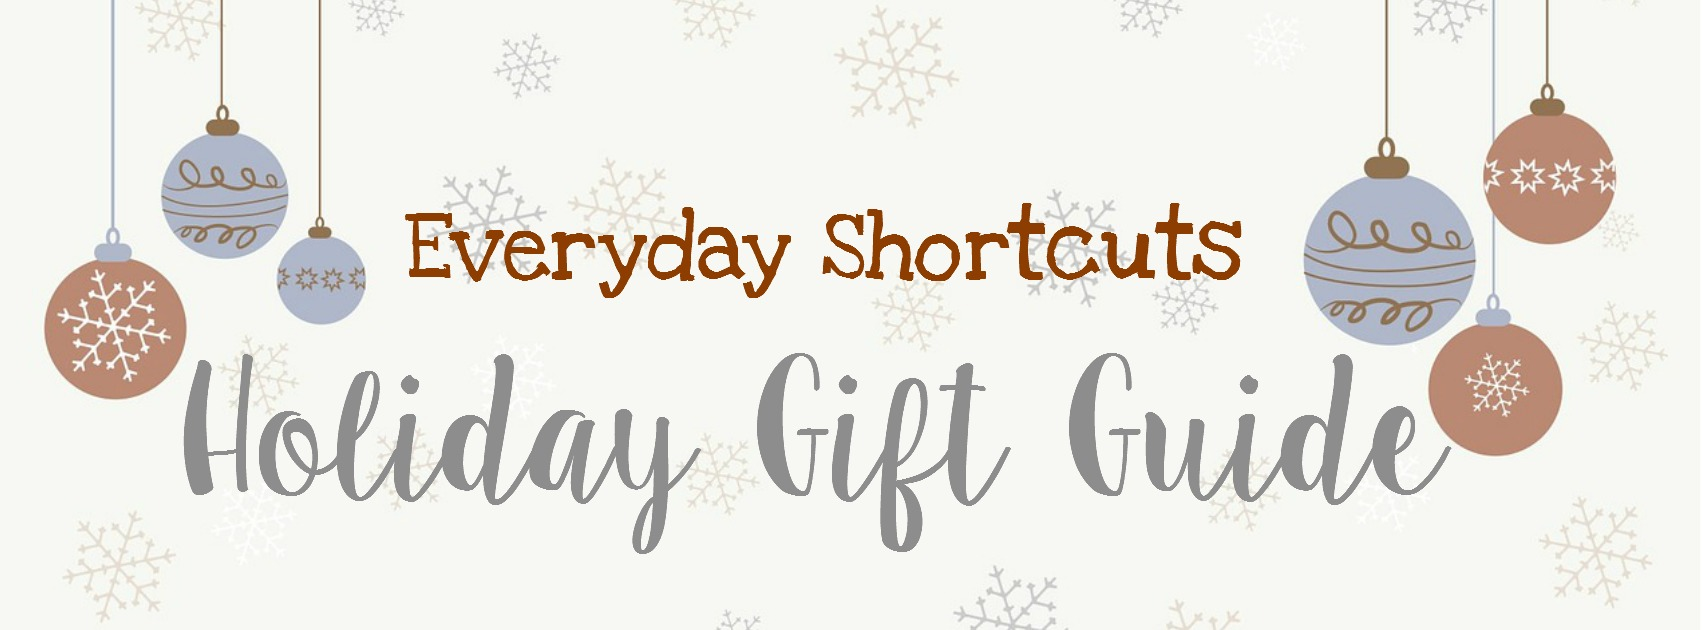 Everyday-Shortcuts-Holiday-Gift-Guide